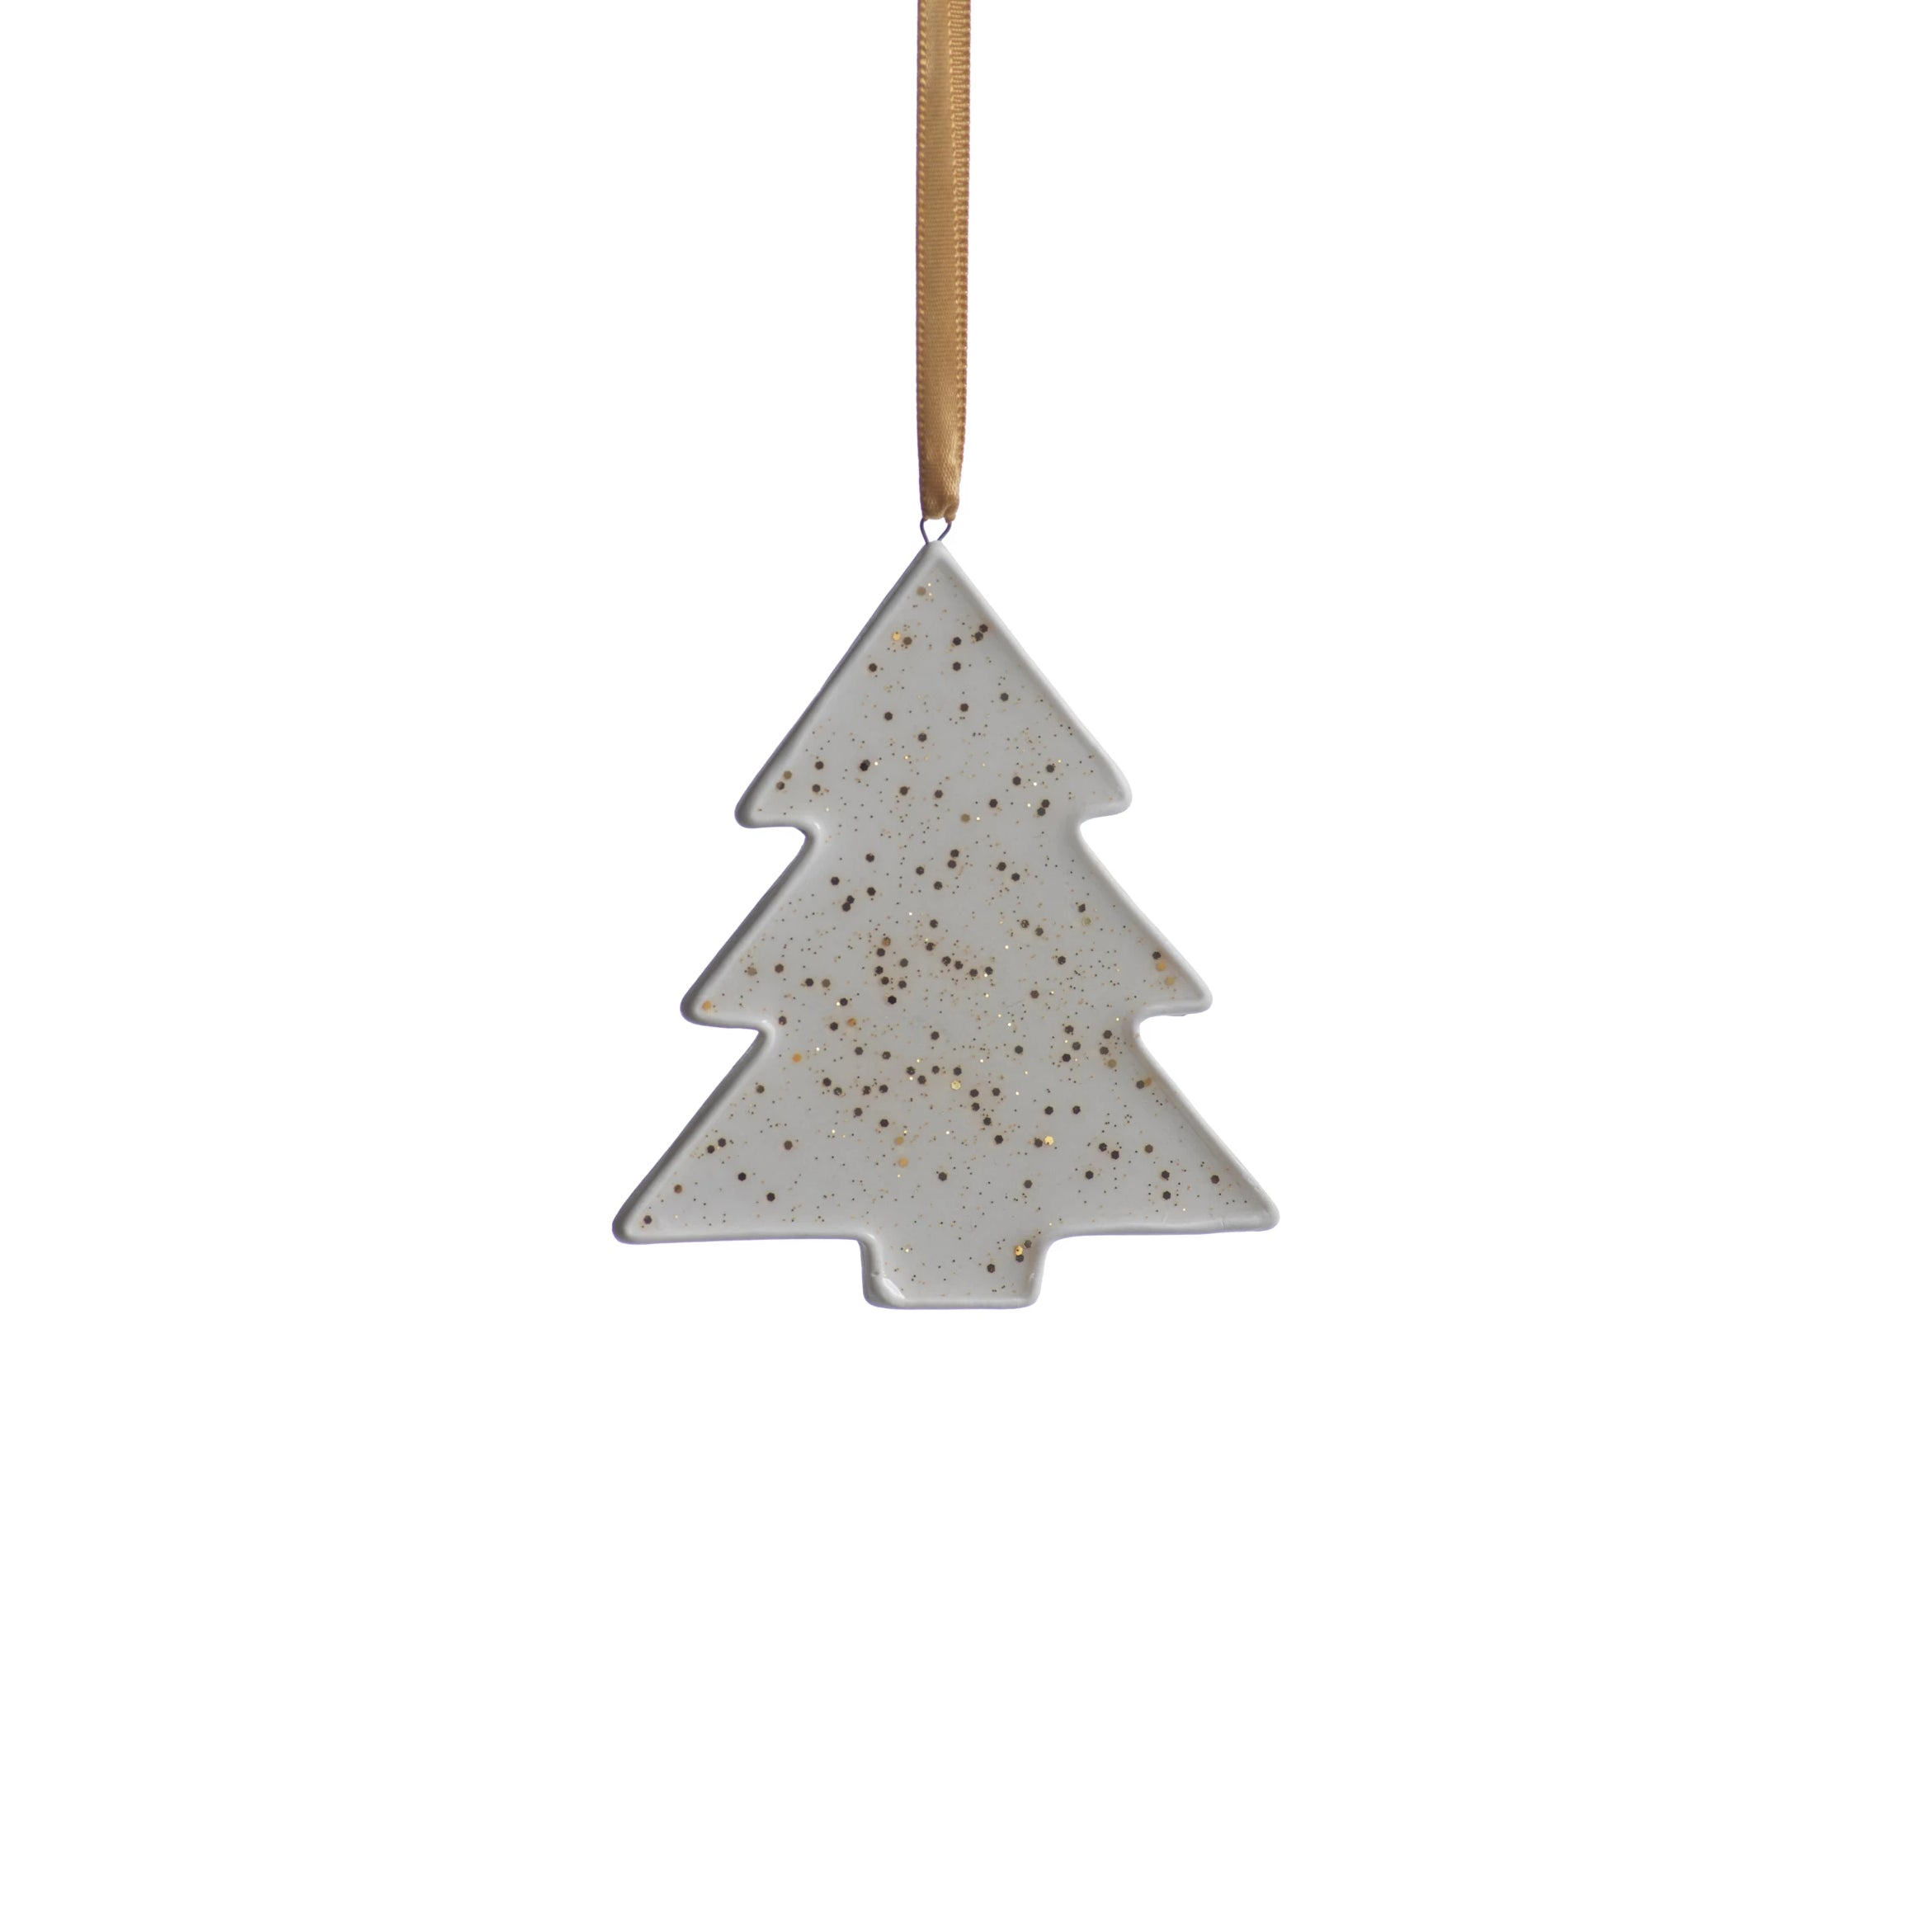 Speckled Tree Ornament - Gold